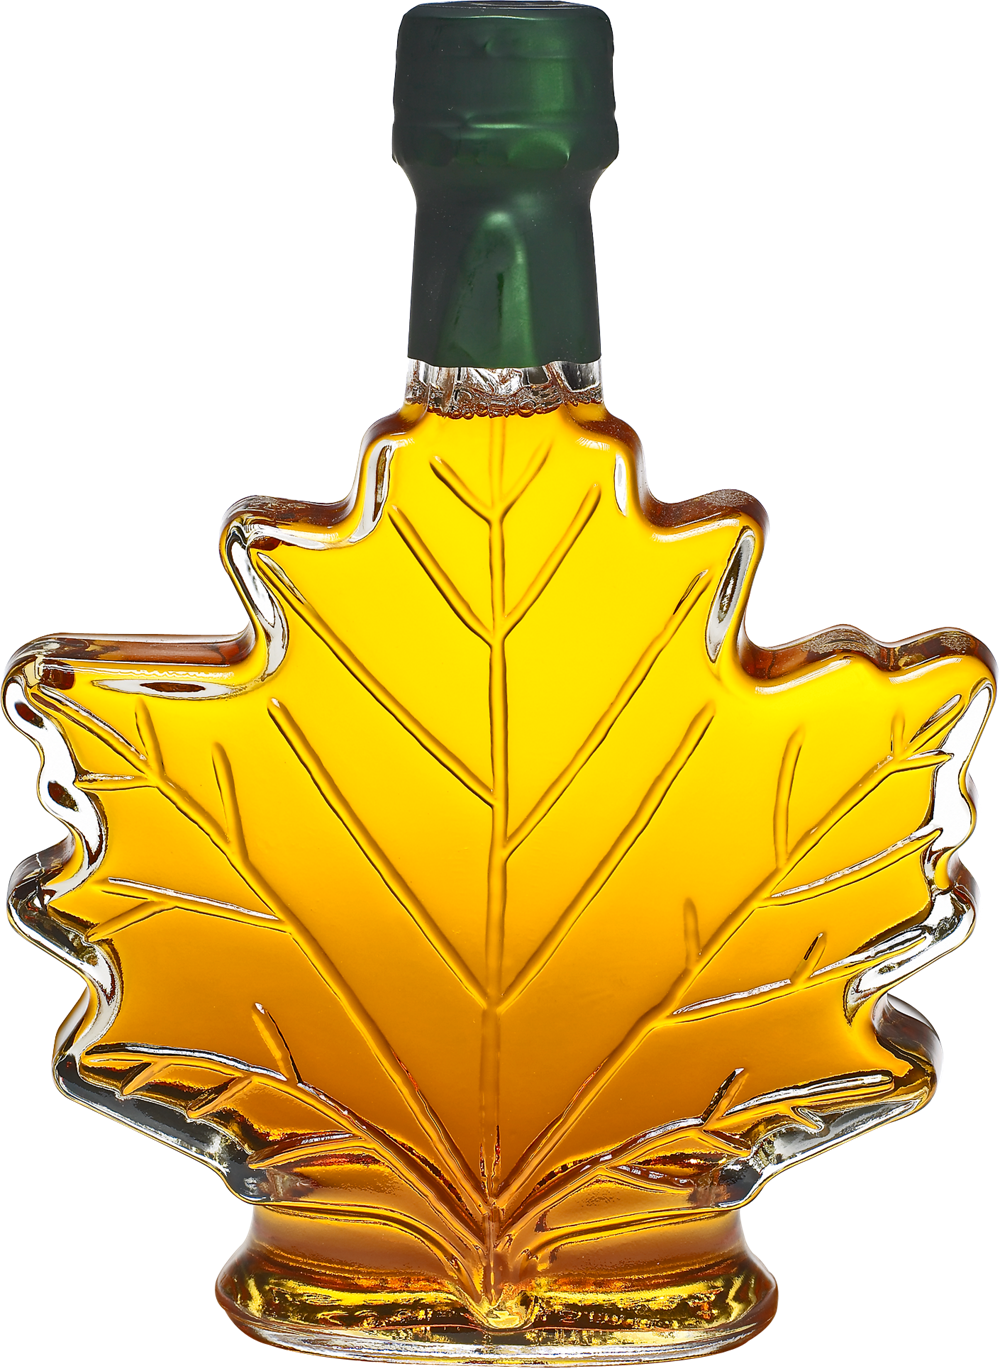 Vermont Maple Leaf Syrup Bottle Syrup Bottle Maple Syrup Bottles Holiday Candy